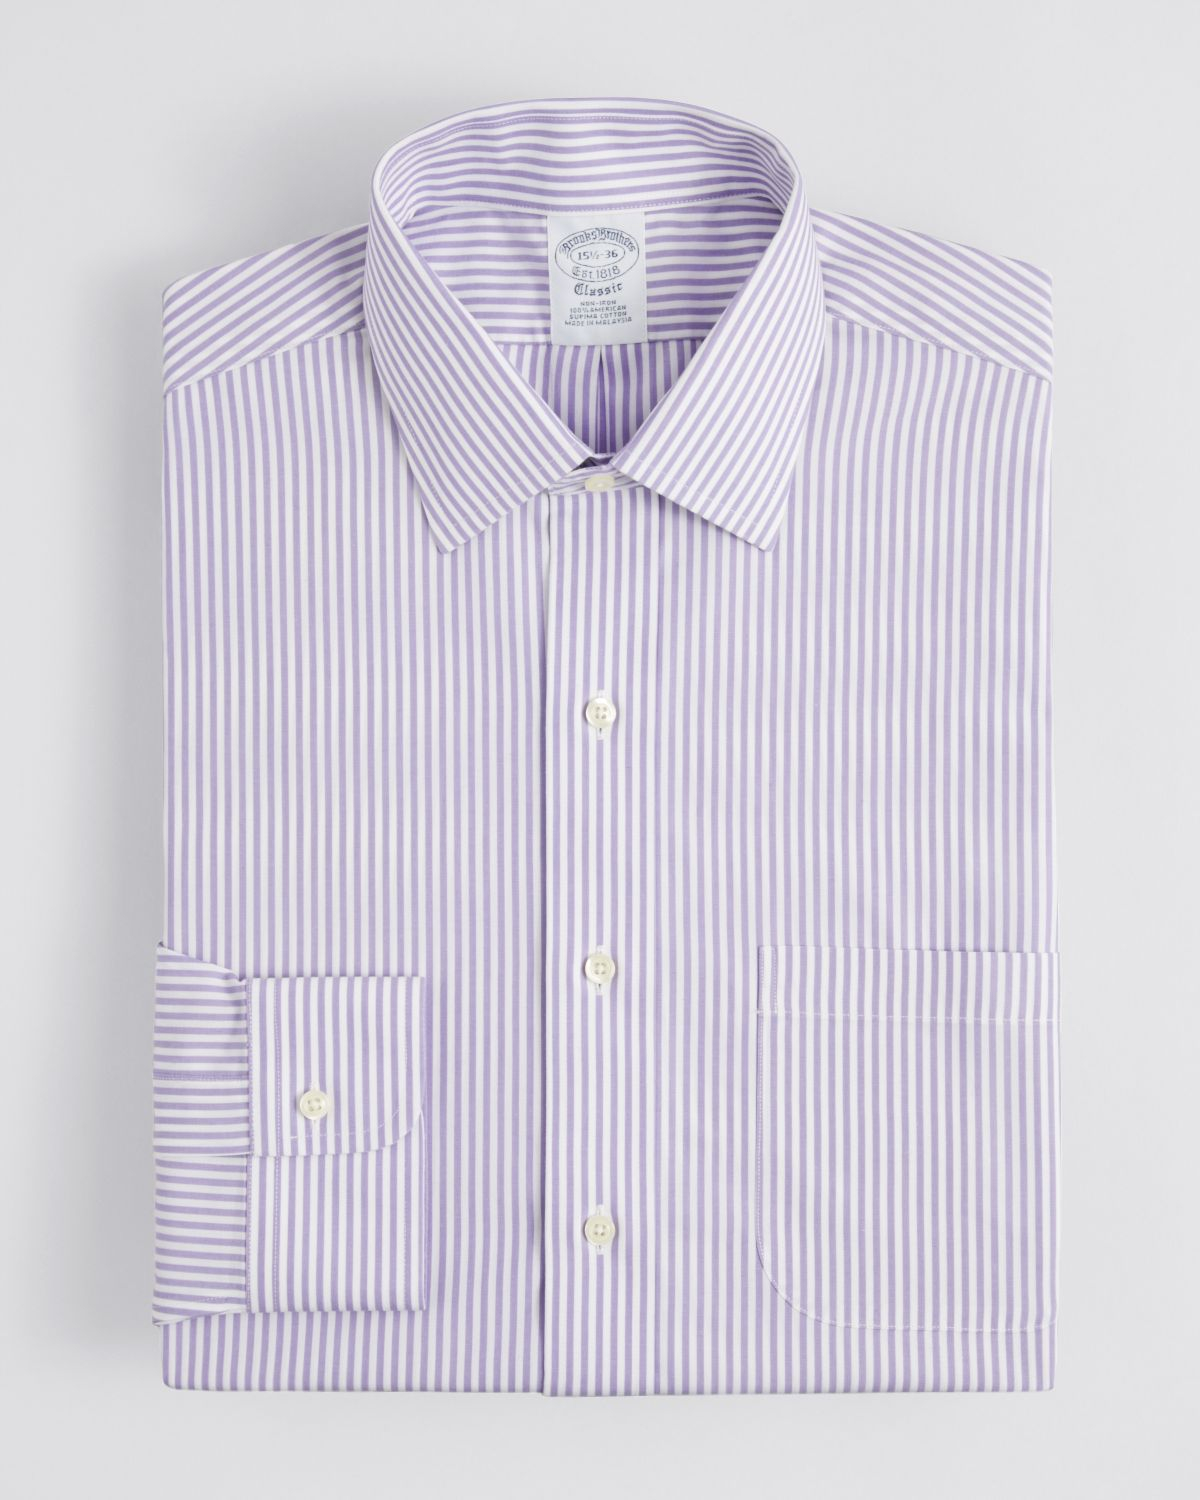 Brooks brothers puppytooth check dress shirt classic fit Brooks brothers shirt size guide